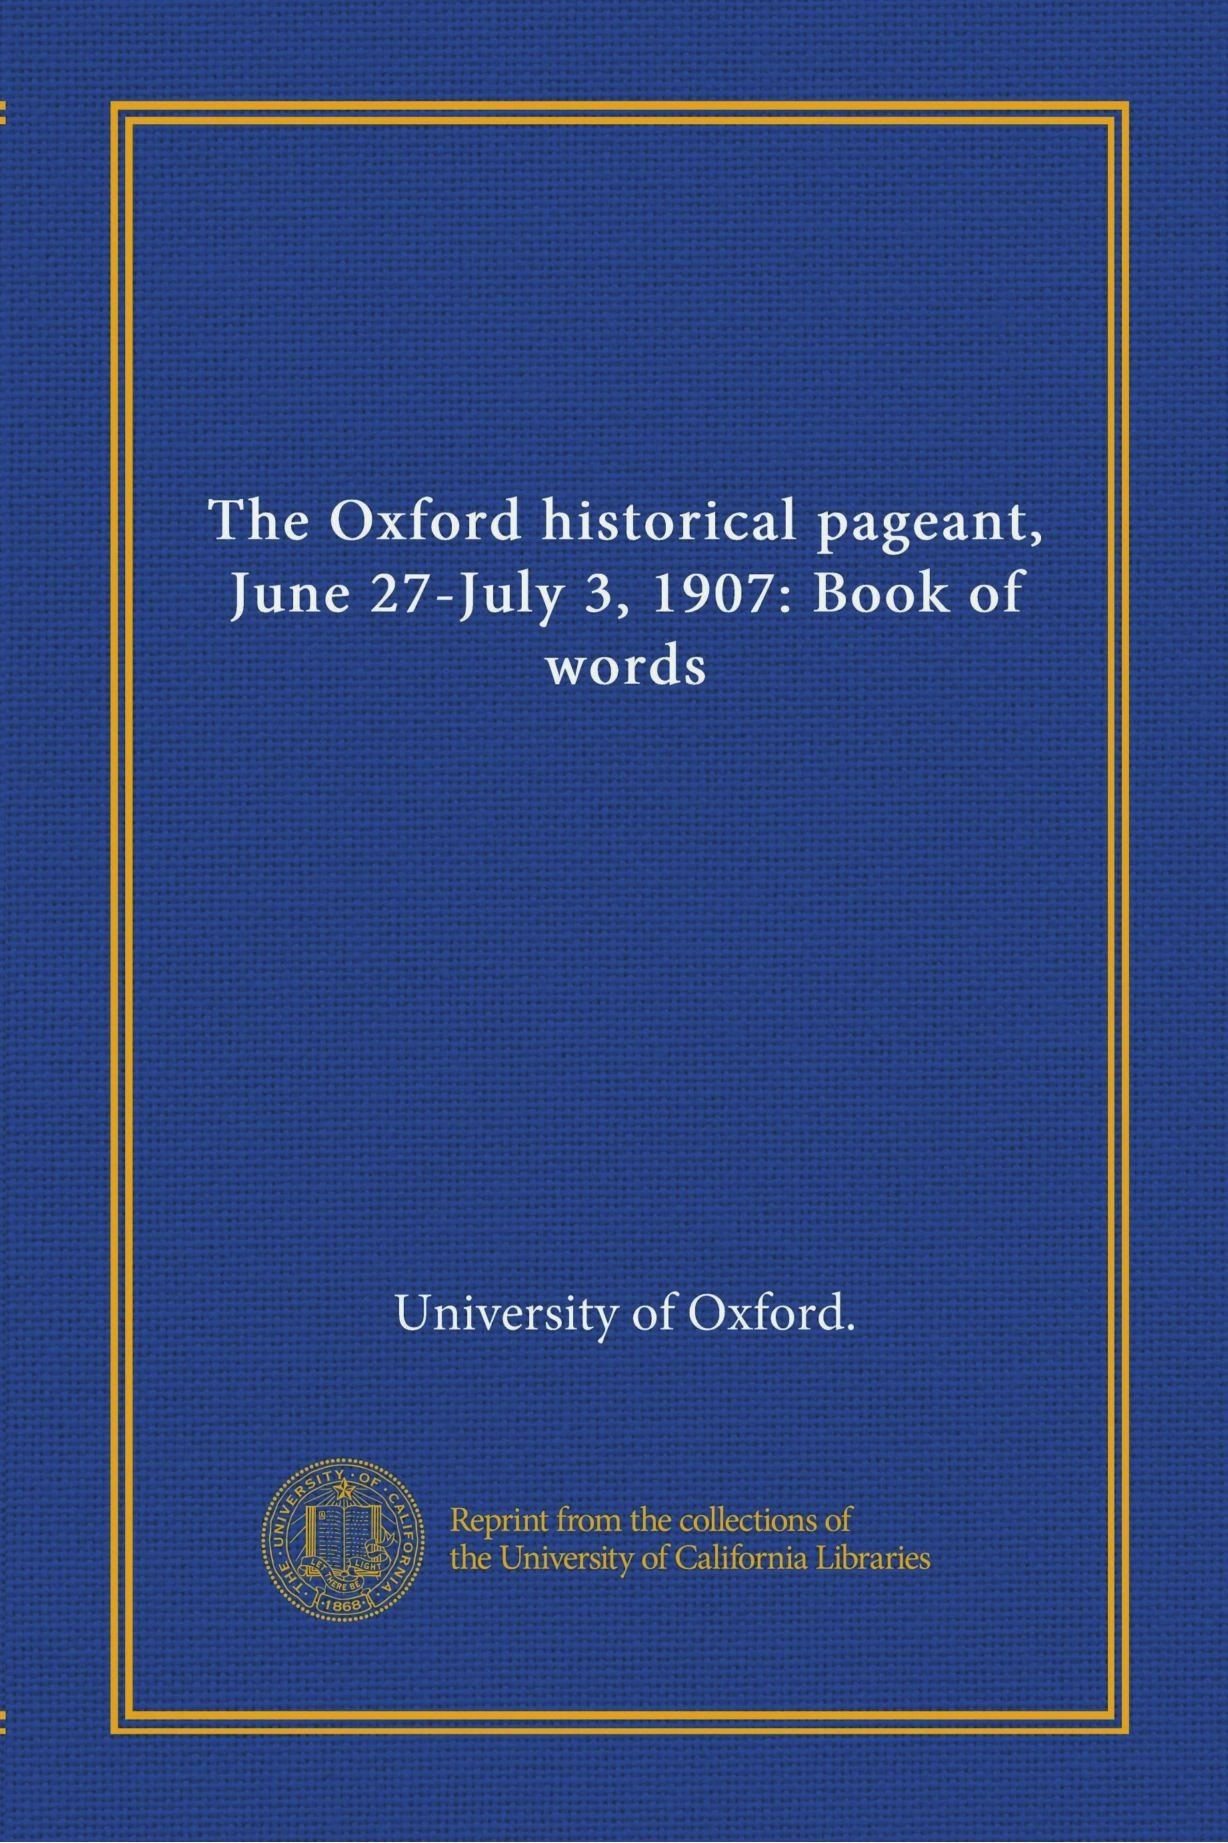 Download The Oxford historical pageant, June 27-July 3, 1907: Book of words pdf